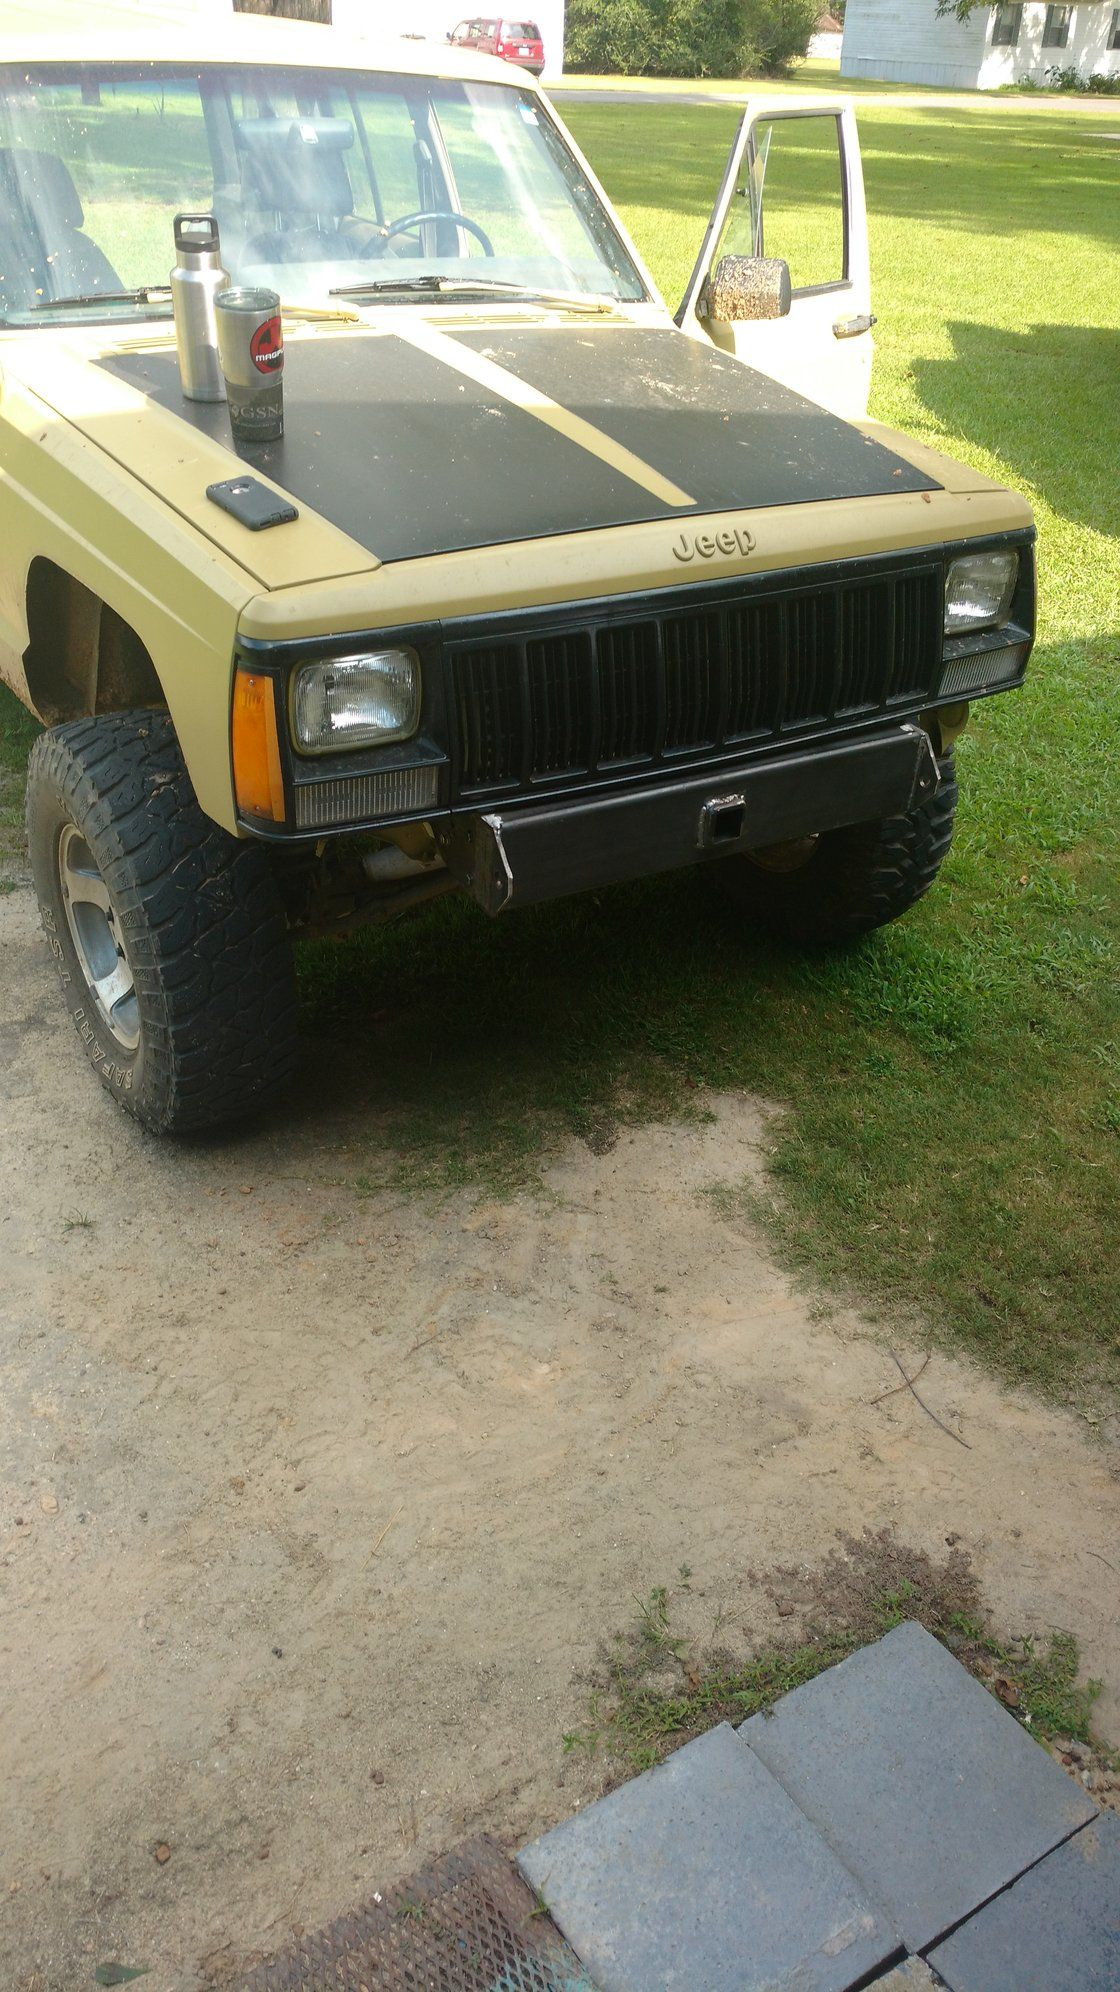 91 Xj Rear Bumper Build Help Pirate4x4 Com 4x4 And Off Road